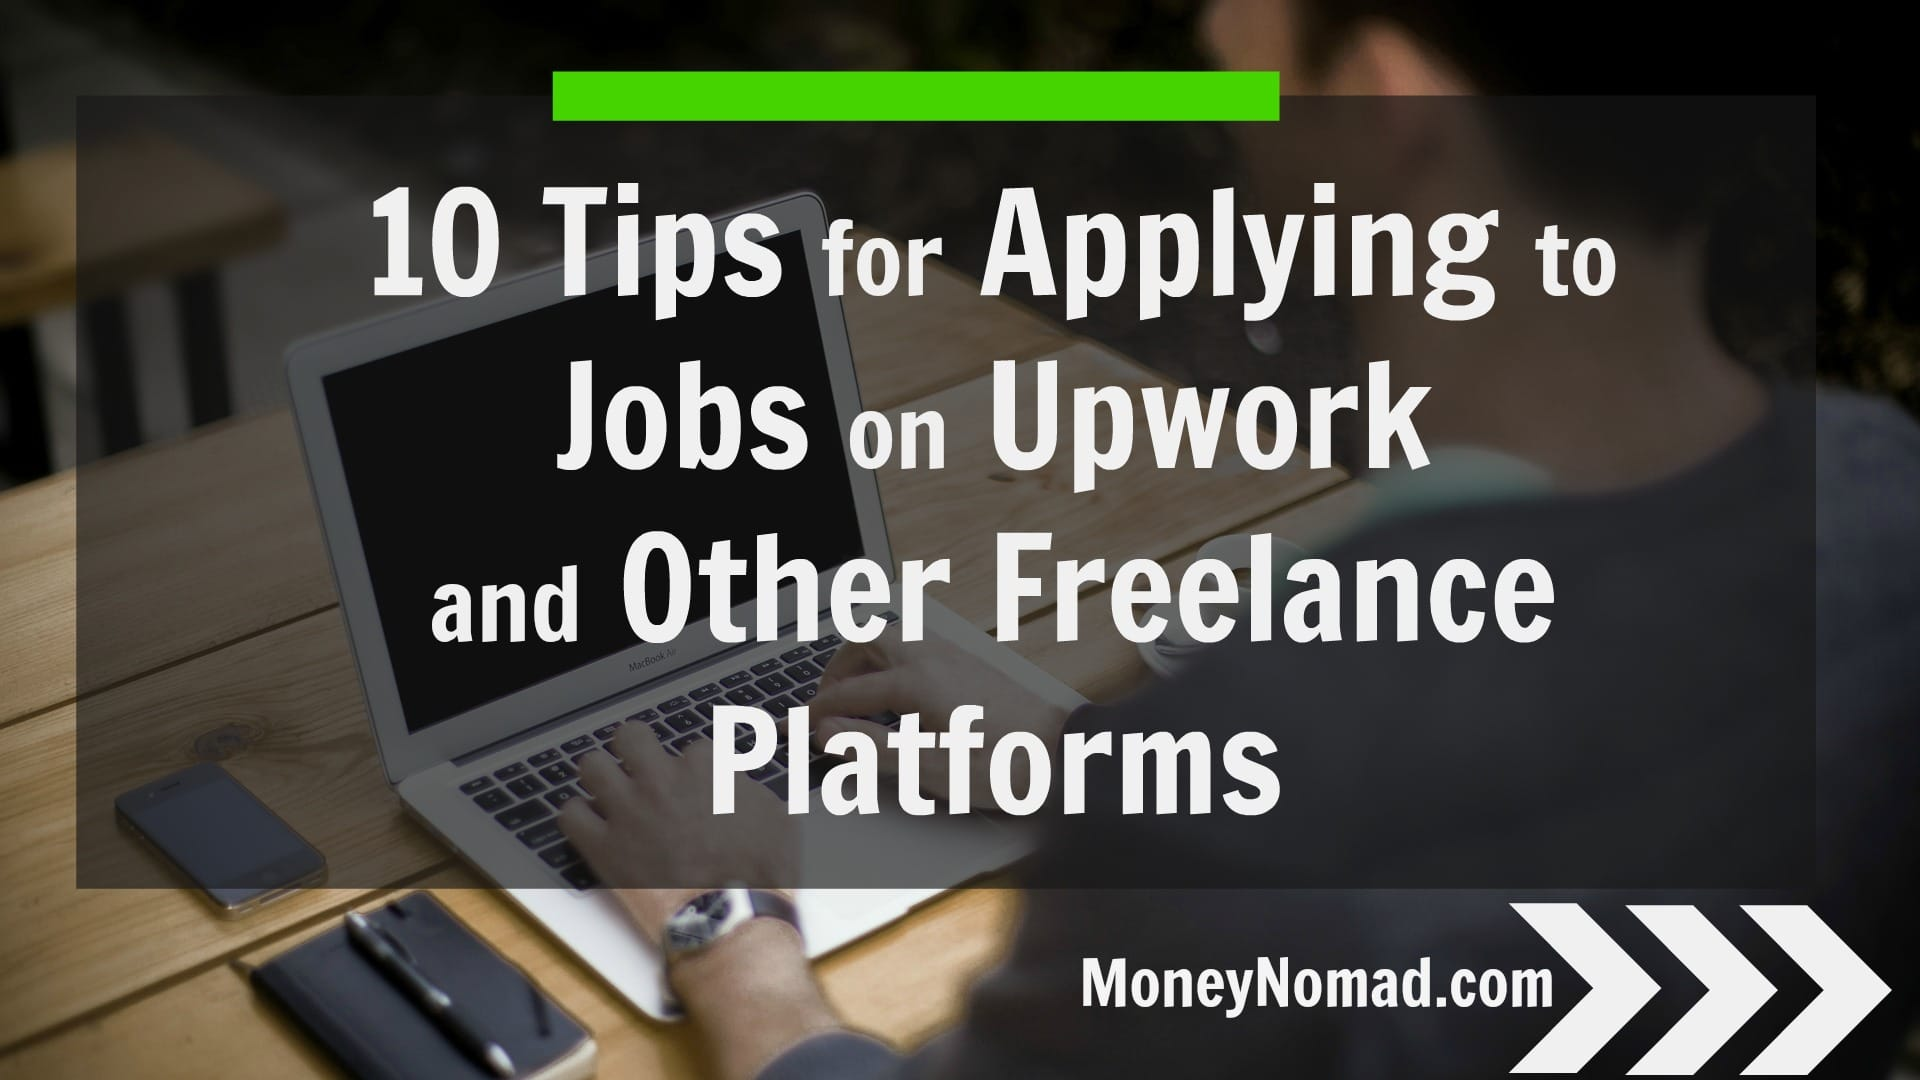 10 Tips for Applying to Jobs on Upwork and other Freelance Websites ...